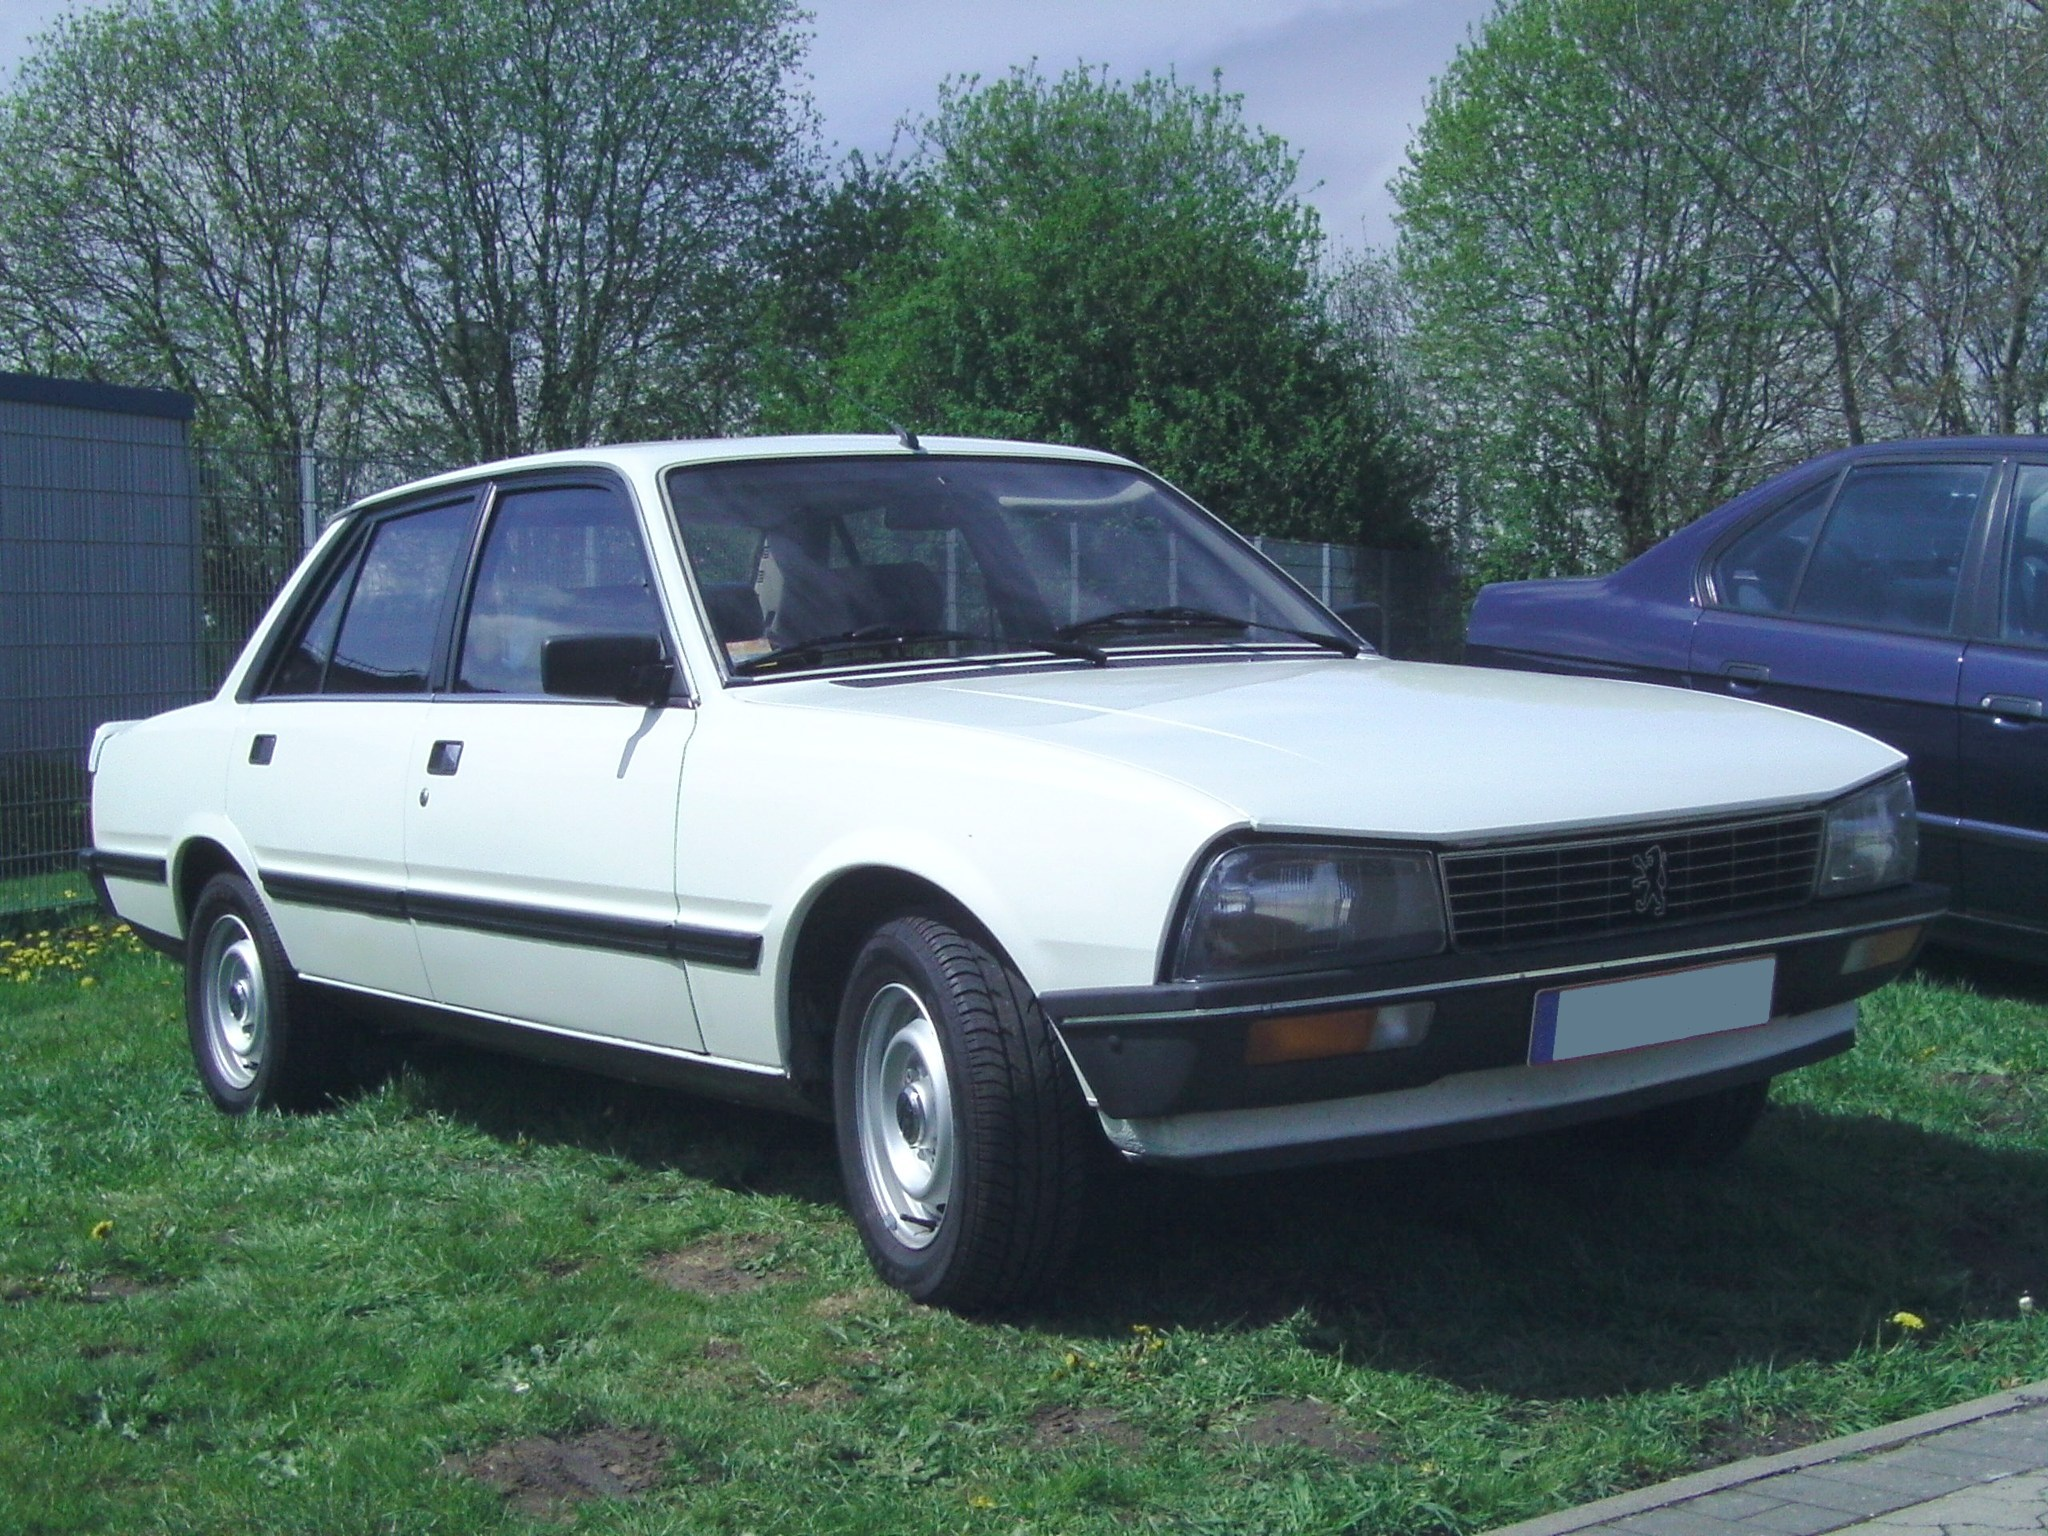 074 Repait Manuals Peugeot 505 Gti | Wiring LibraryWiring Library